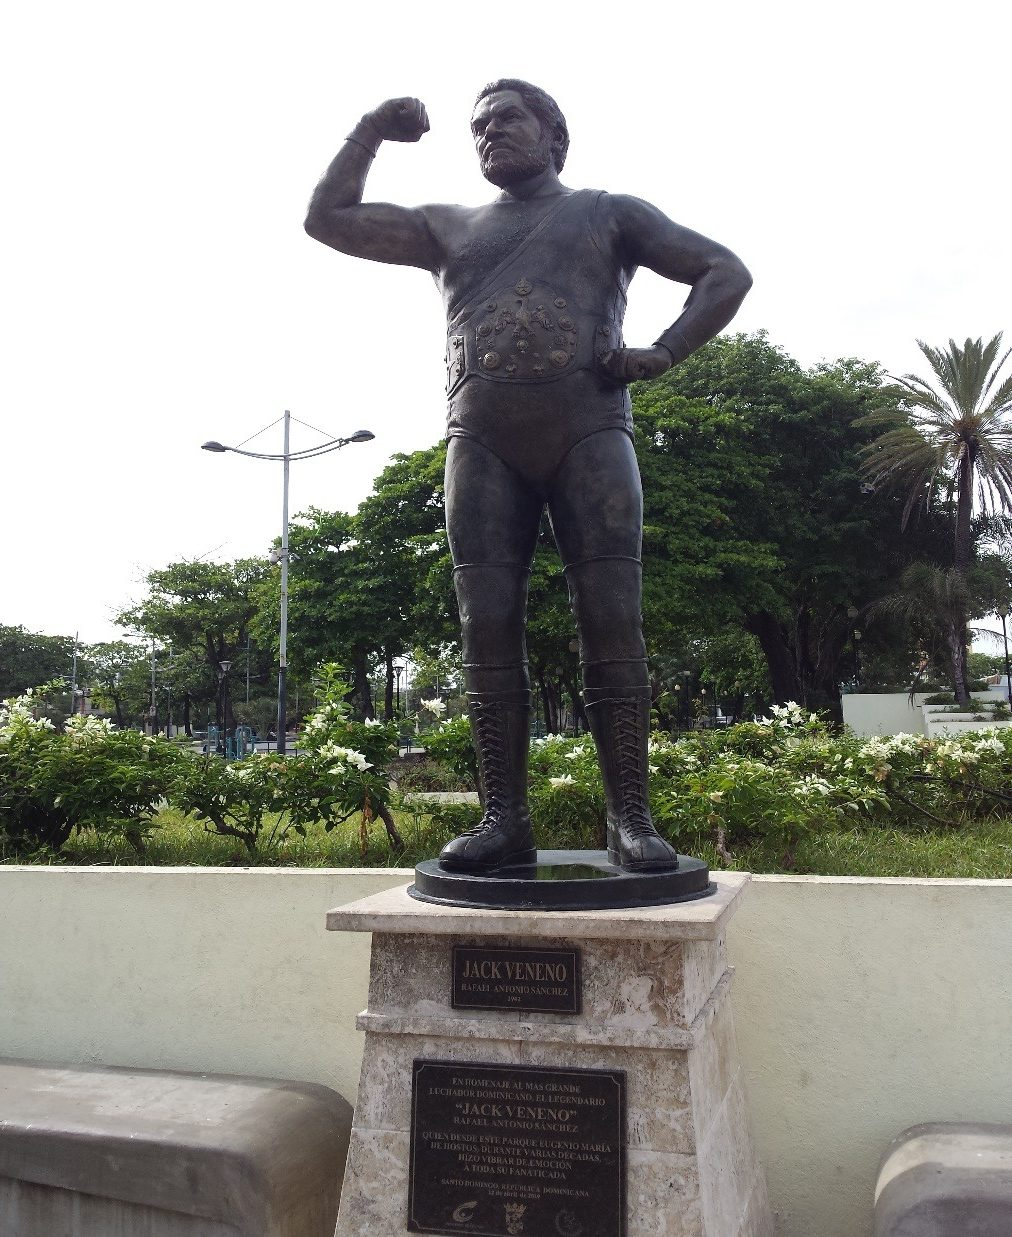 As of the publication of this piece, Jack Veneno is still alive and was recognized with a statue erected in his honor in Eugenio Maria de Hostos Park in Santo Domingo, Dominican Republic on April 12th, 2019.